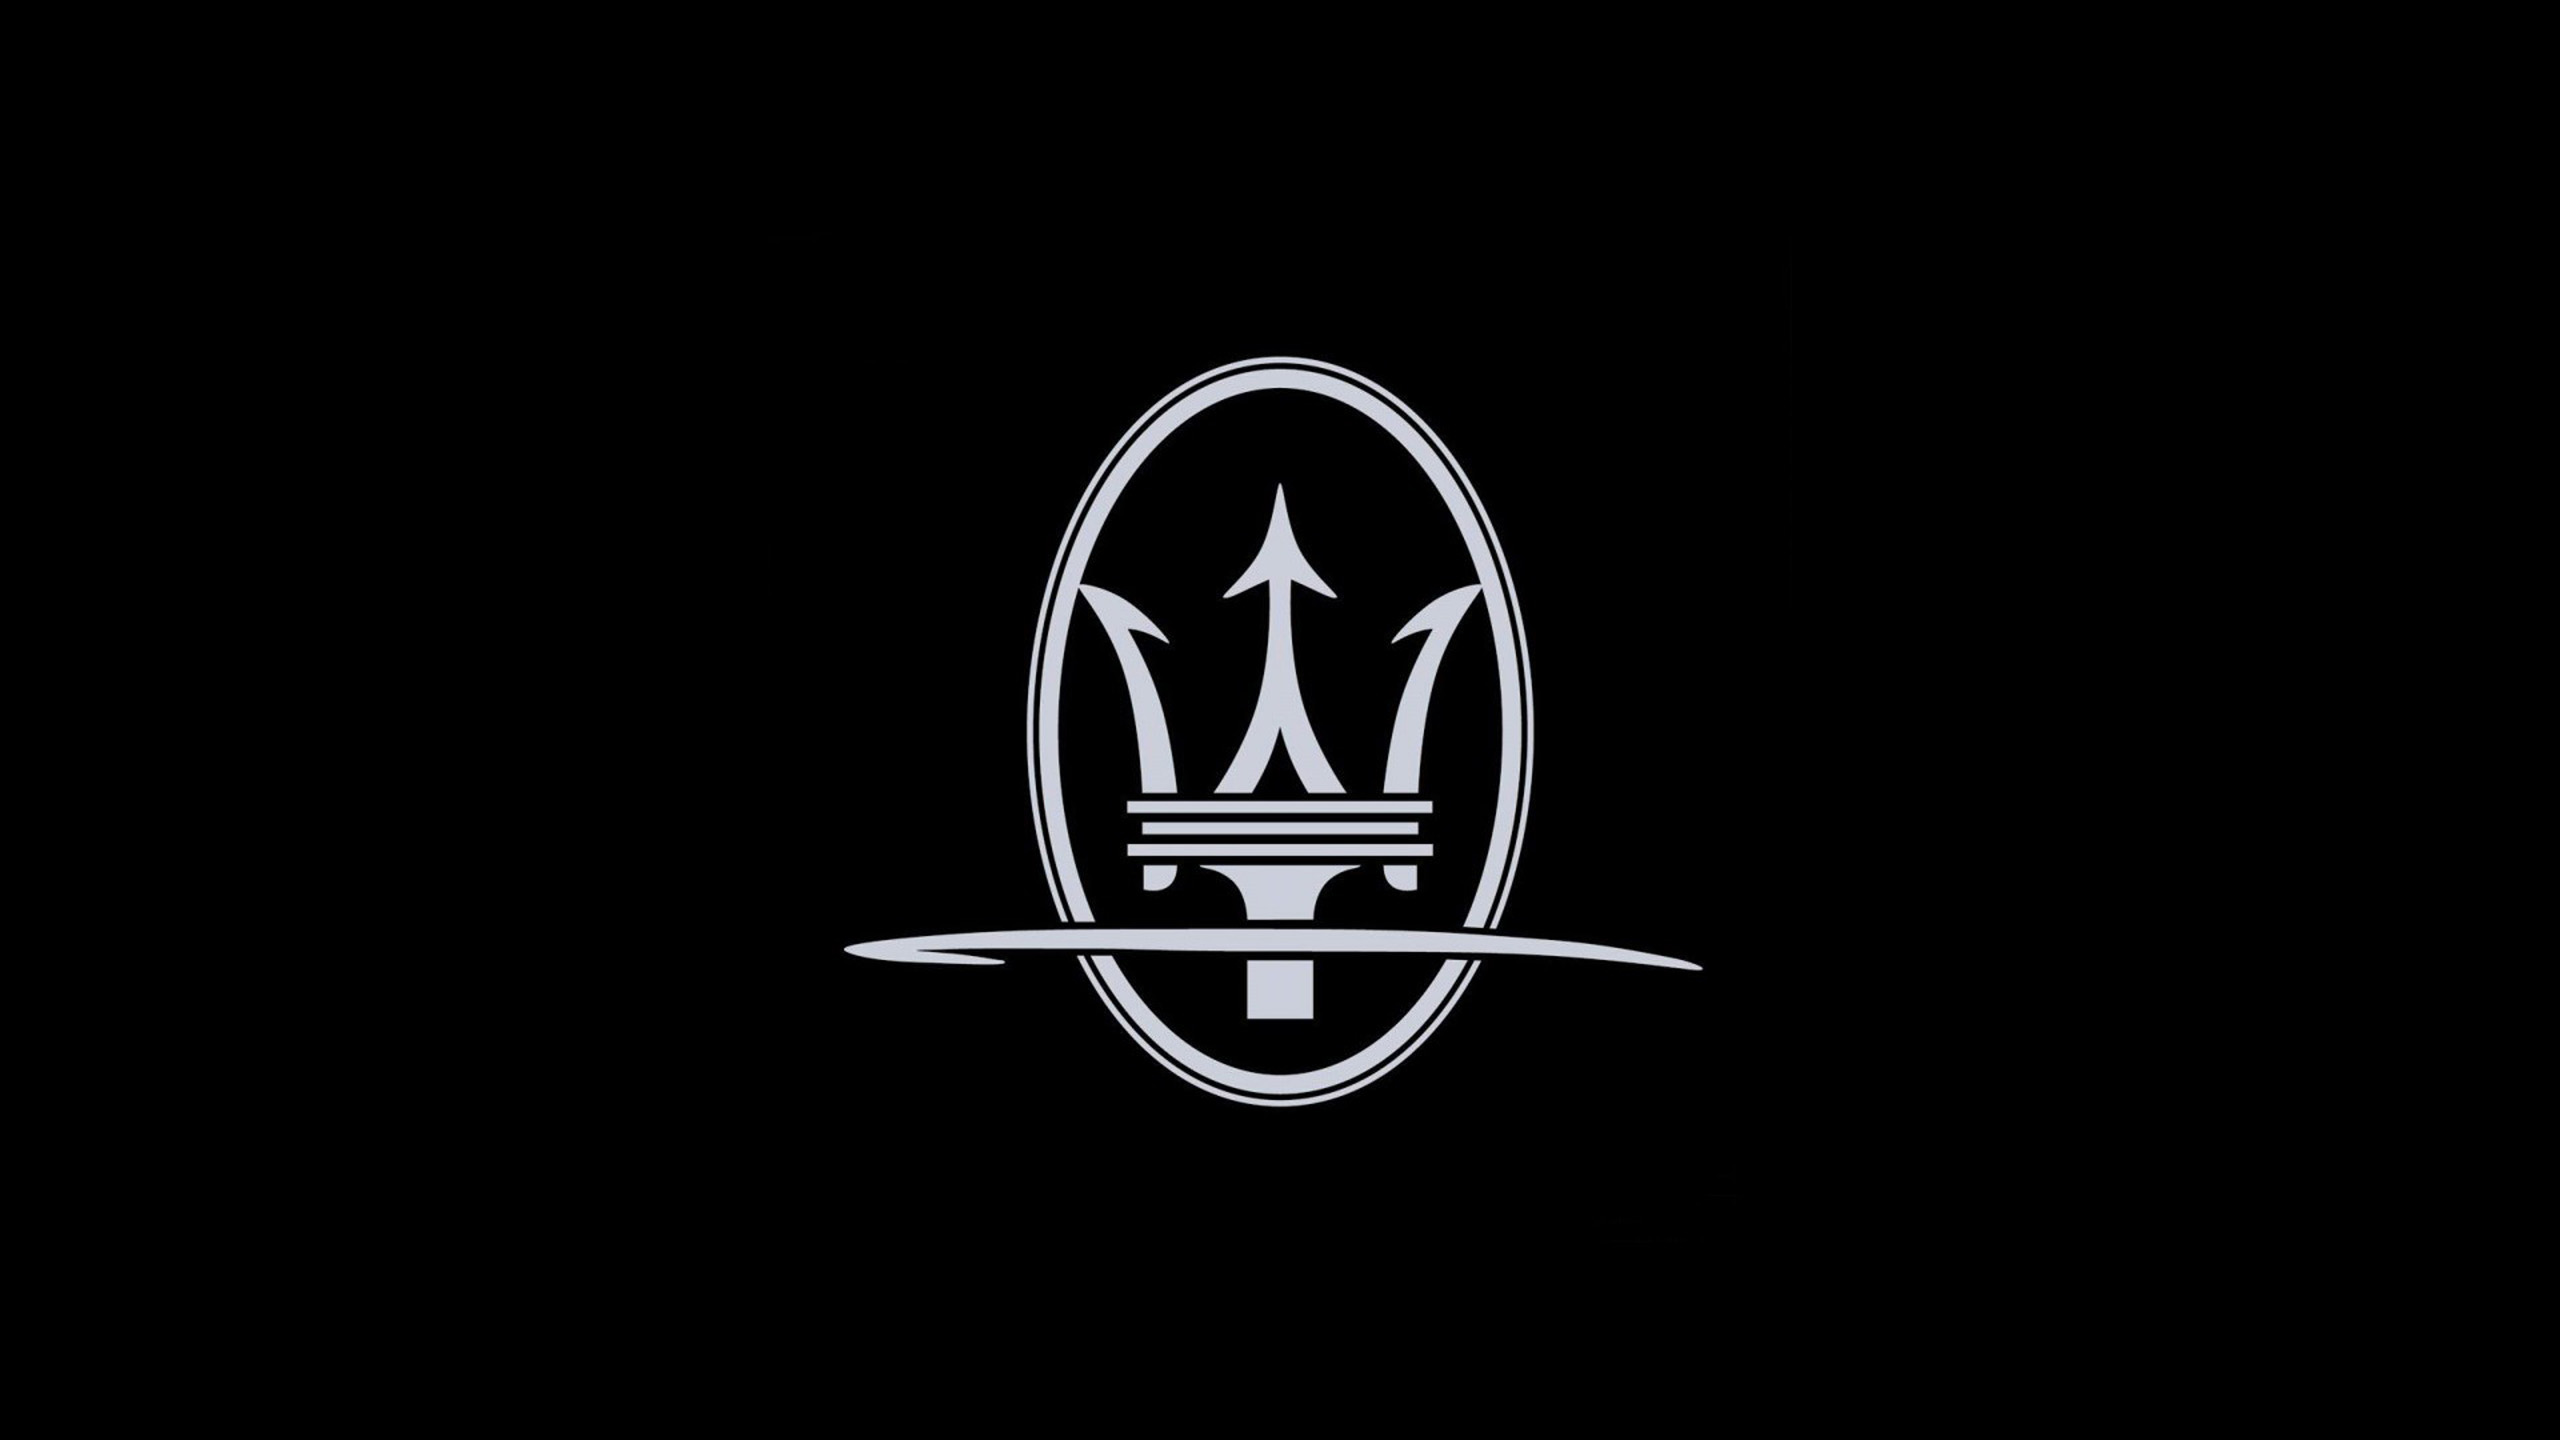 maserati logo wallpaper 240x320 car cool logo maserati Car Pictures 2560x1440